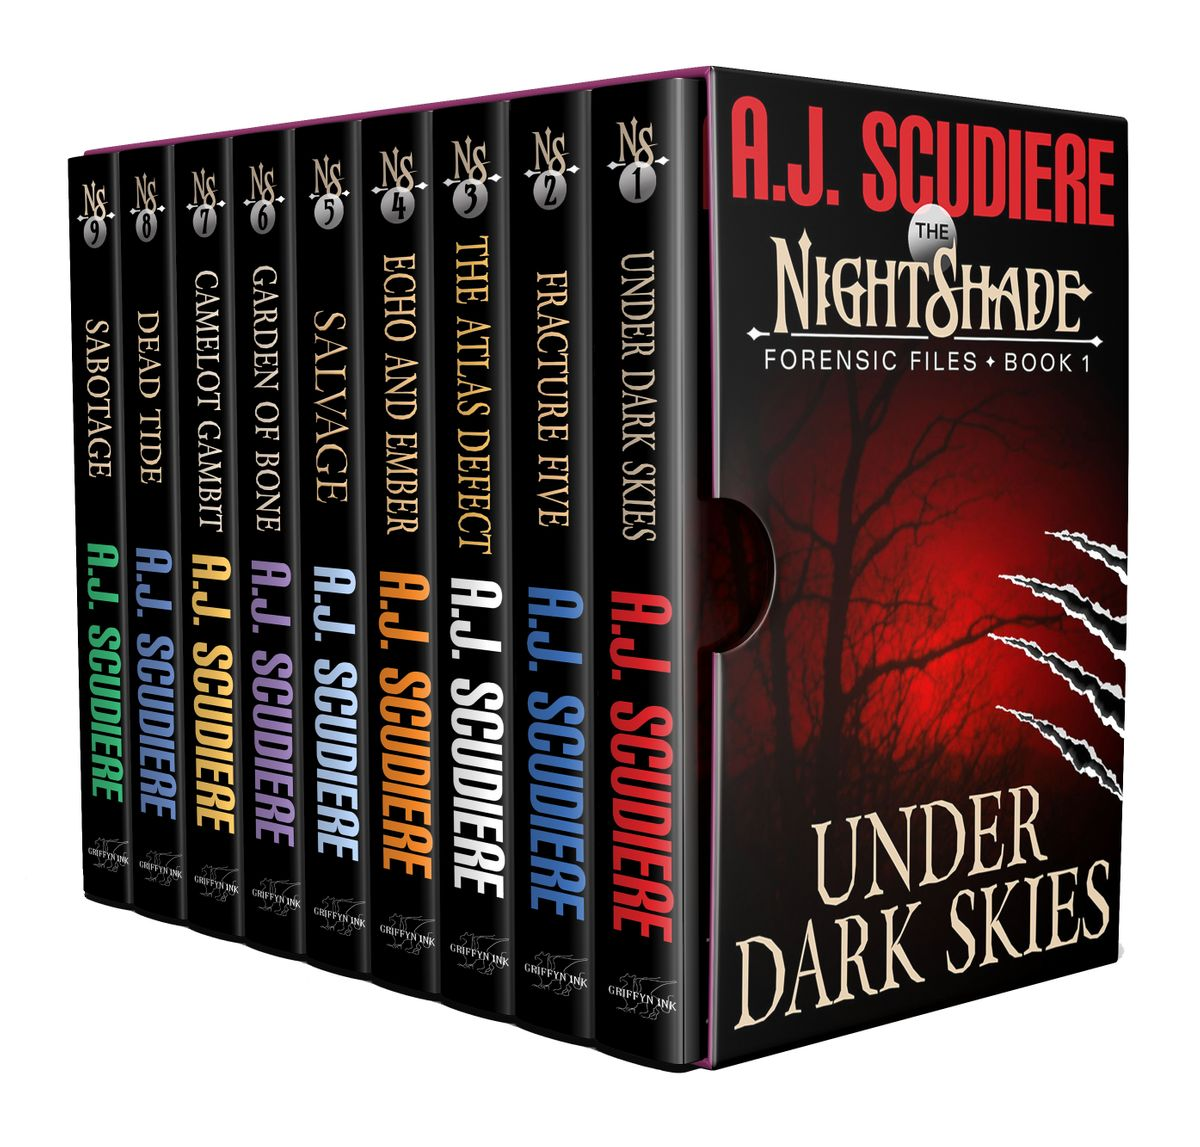 The NightShade Forensic Files: Complete Set (Books 1-9)